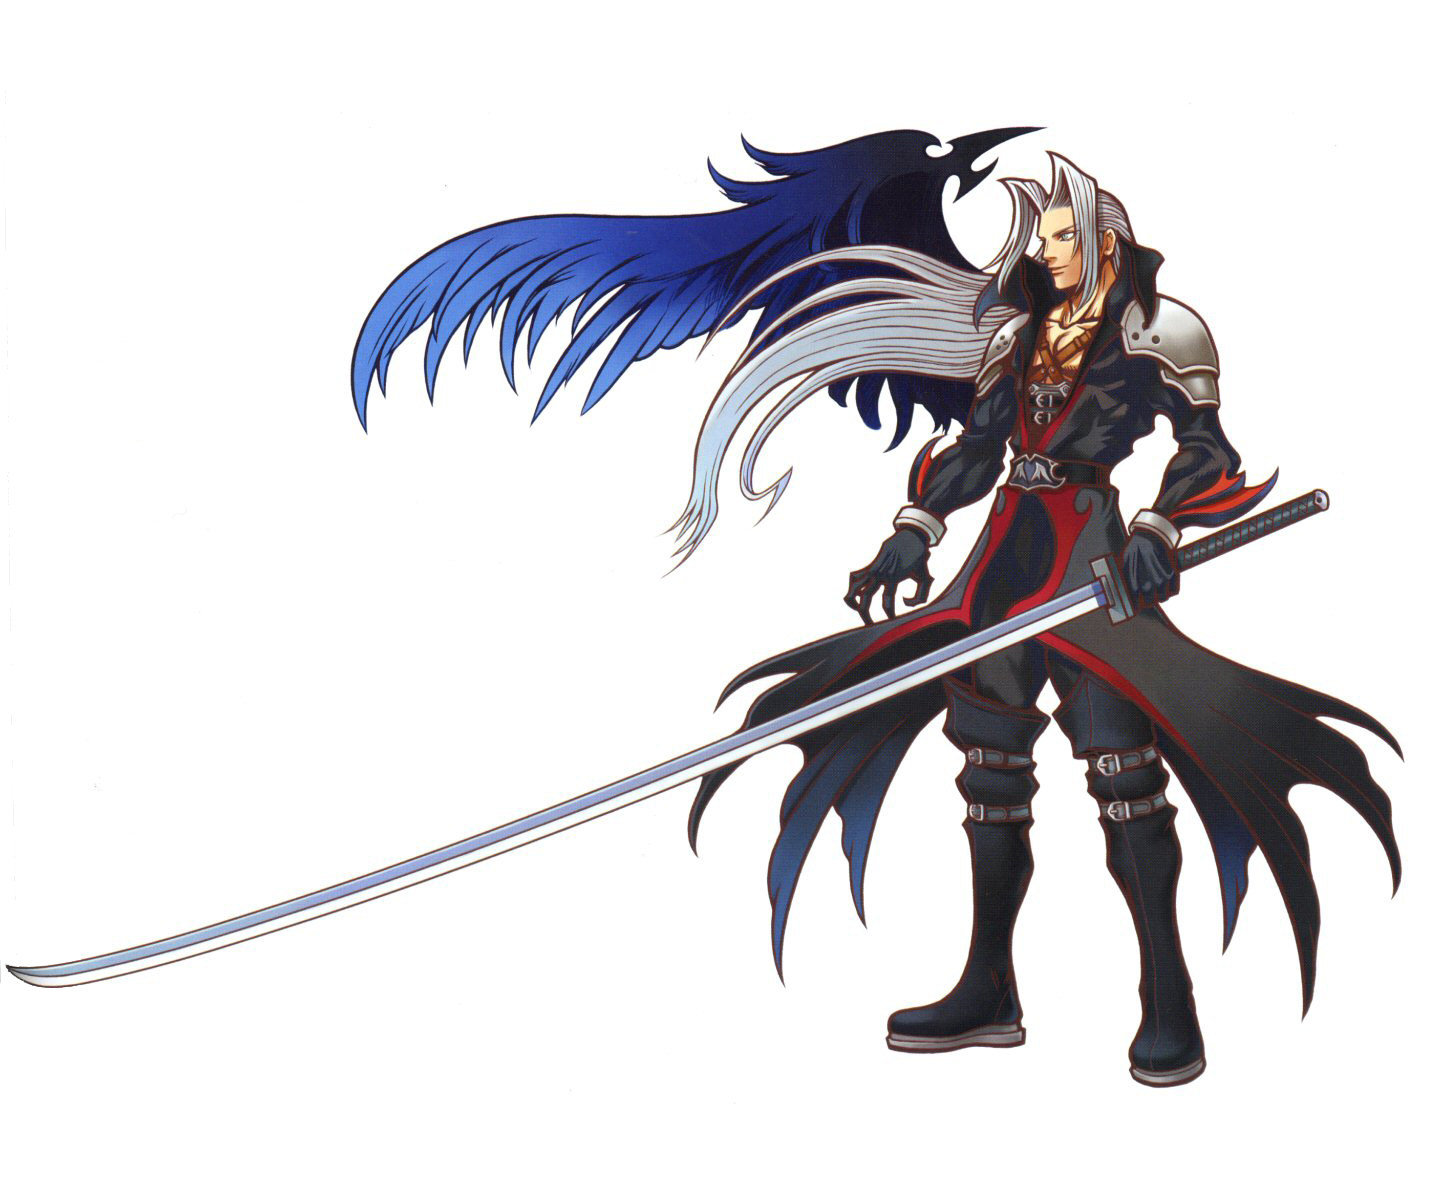 https://www.fightersgeneration.com/characters3/sephiroth-kingdom-ultra.jpg